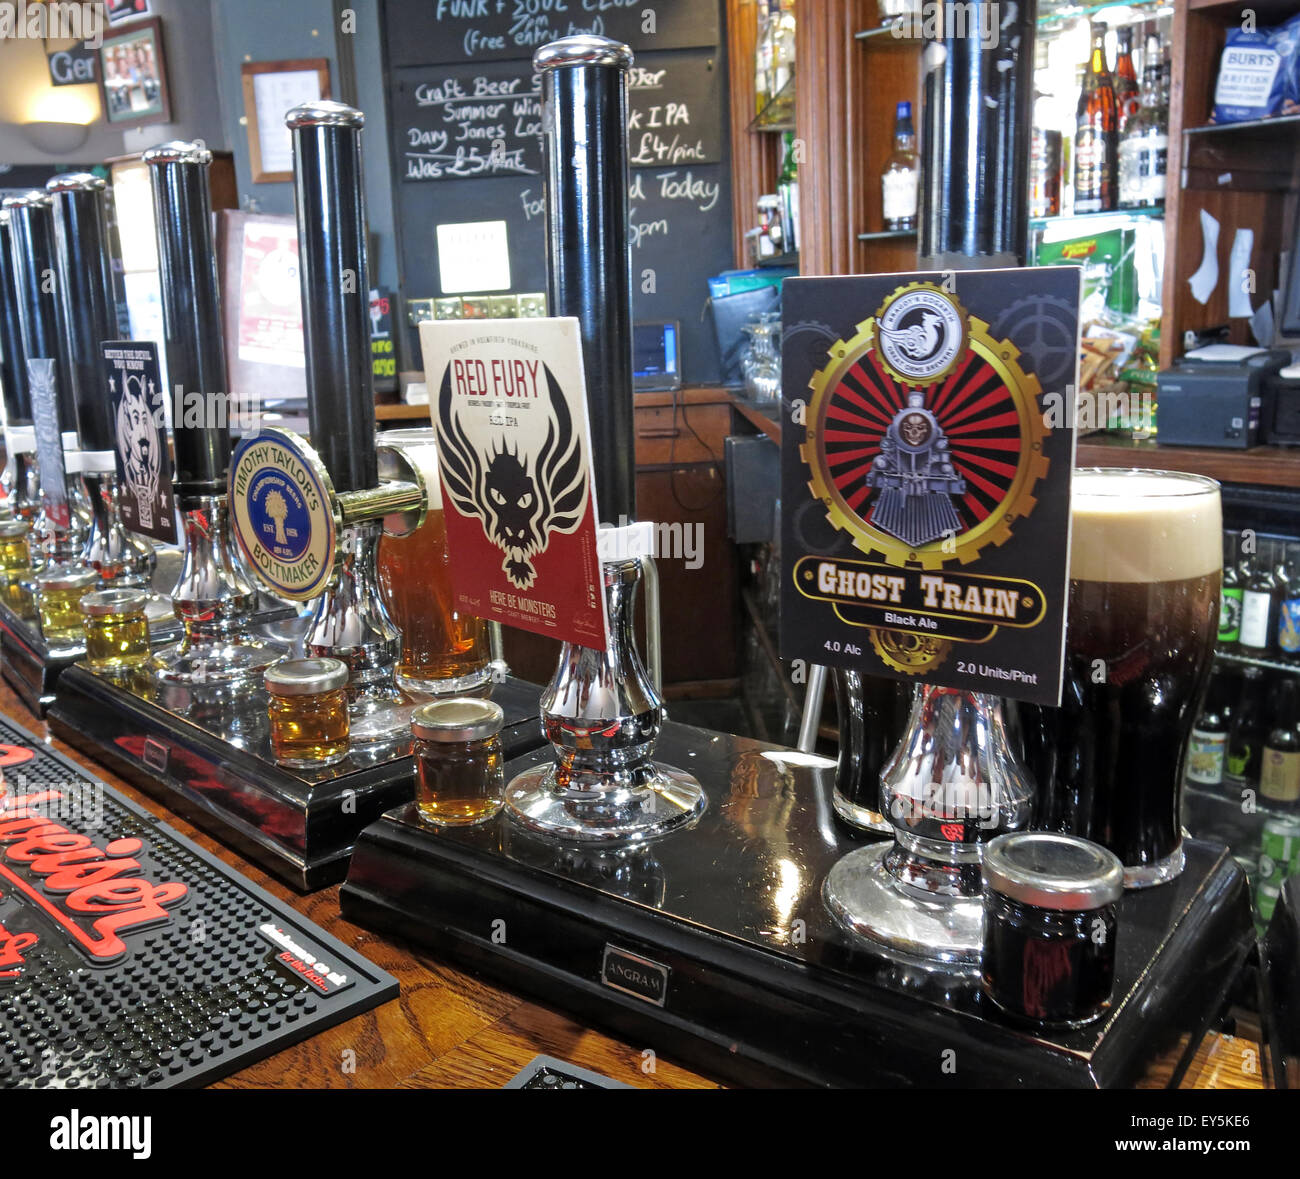 Several real ales on the bar, The Sportsman Inn, Huddersfield, West Yorkshire, England, UK - Stock Image